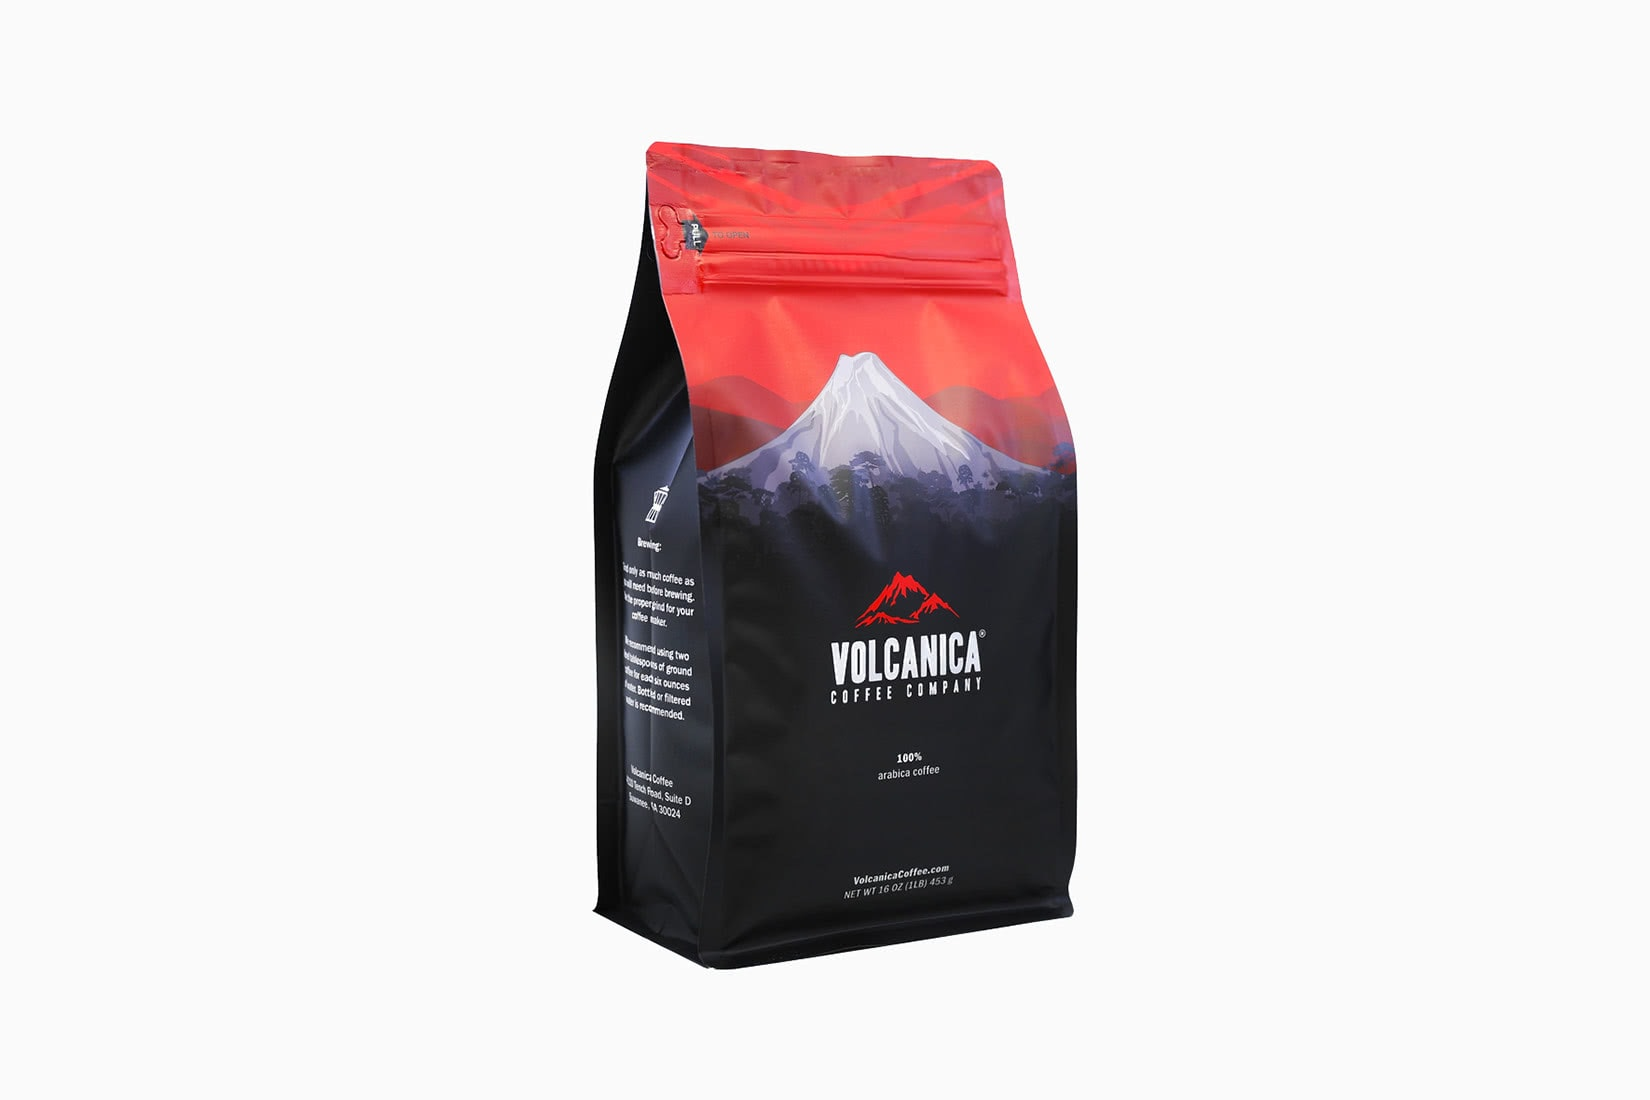 best coffee beans brands arabica volcanica review - Luxe Digital